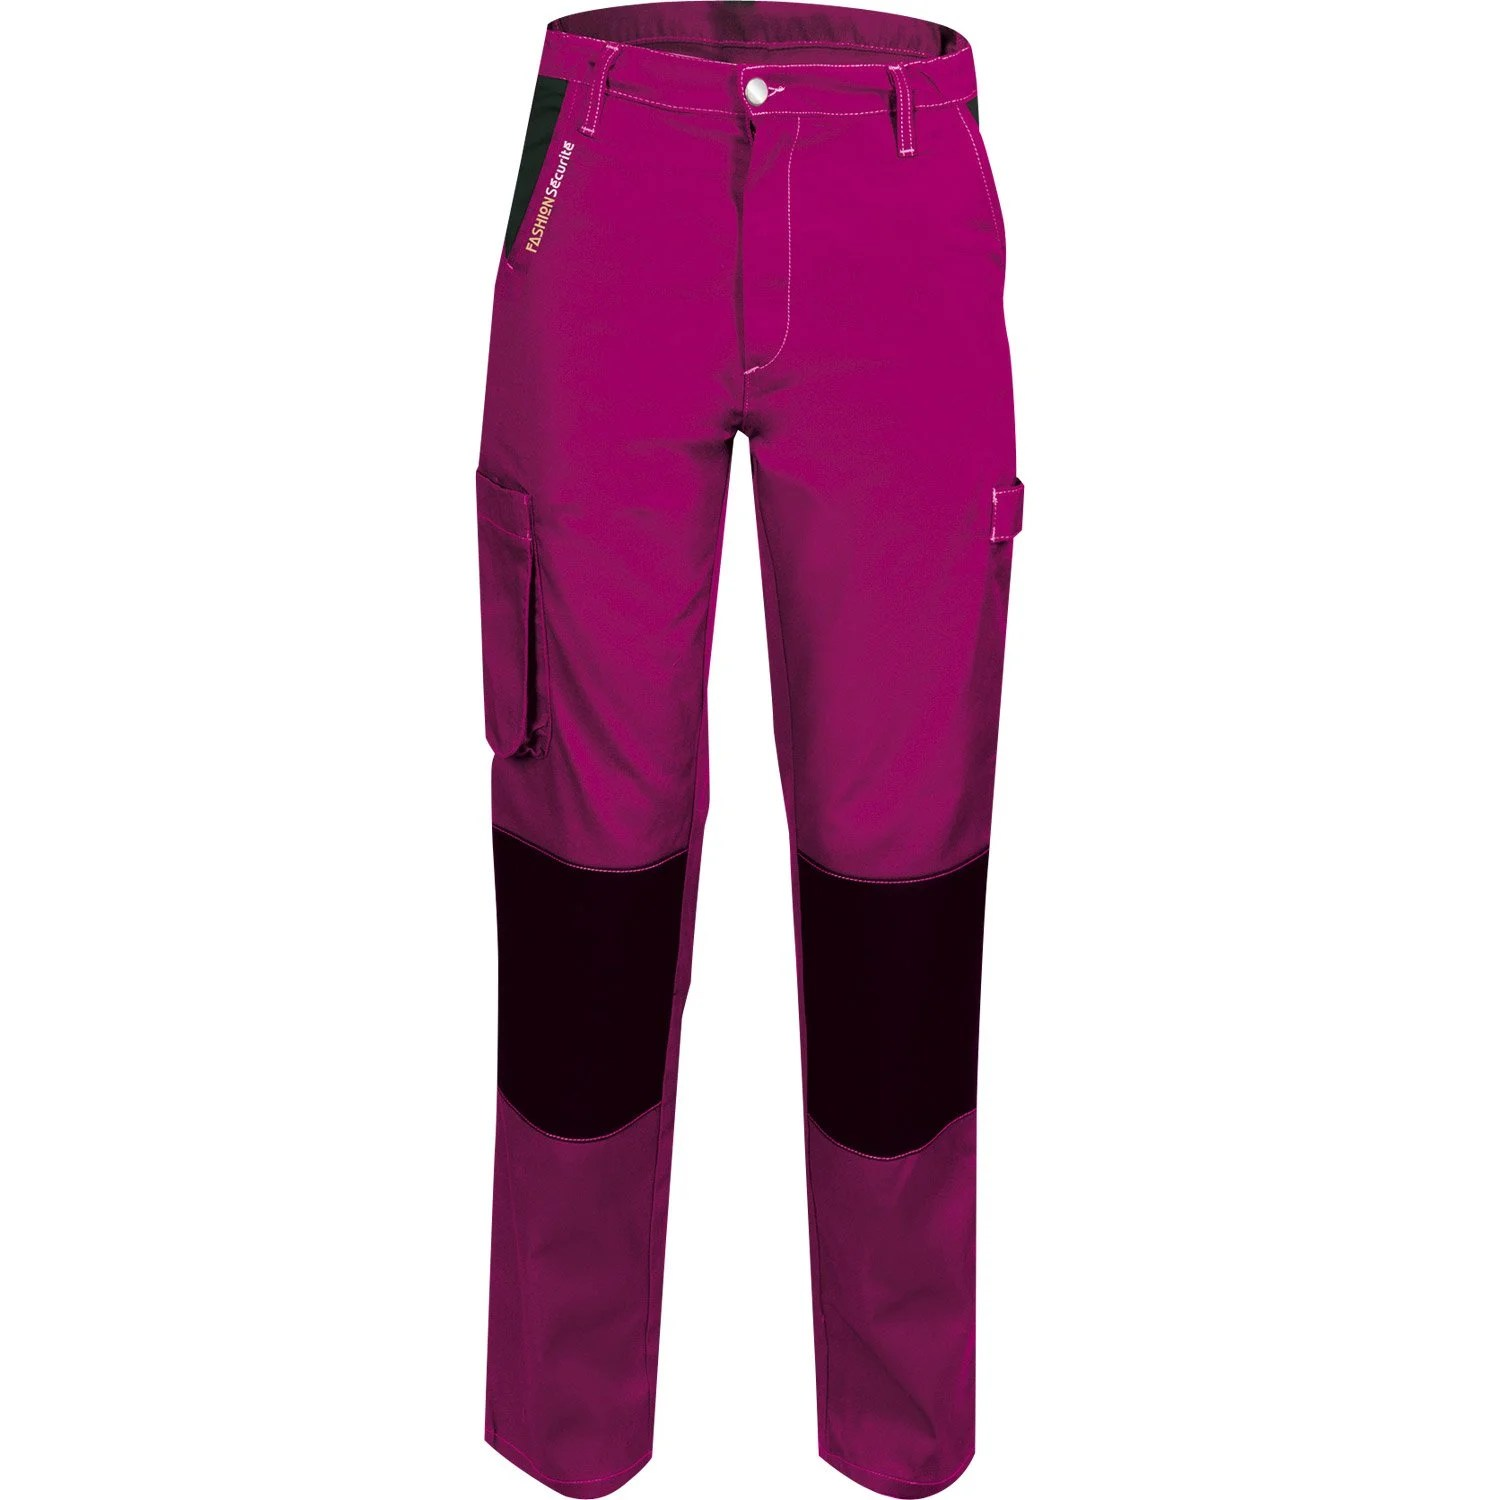 Pantalon Peintre Leroy Merlin Pantalon De Travail Fashion Securite Pep 39s Rose Noir